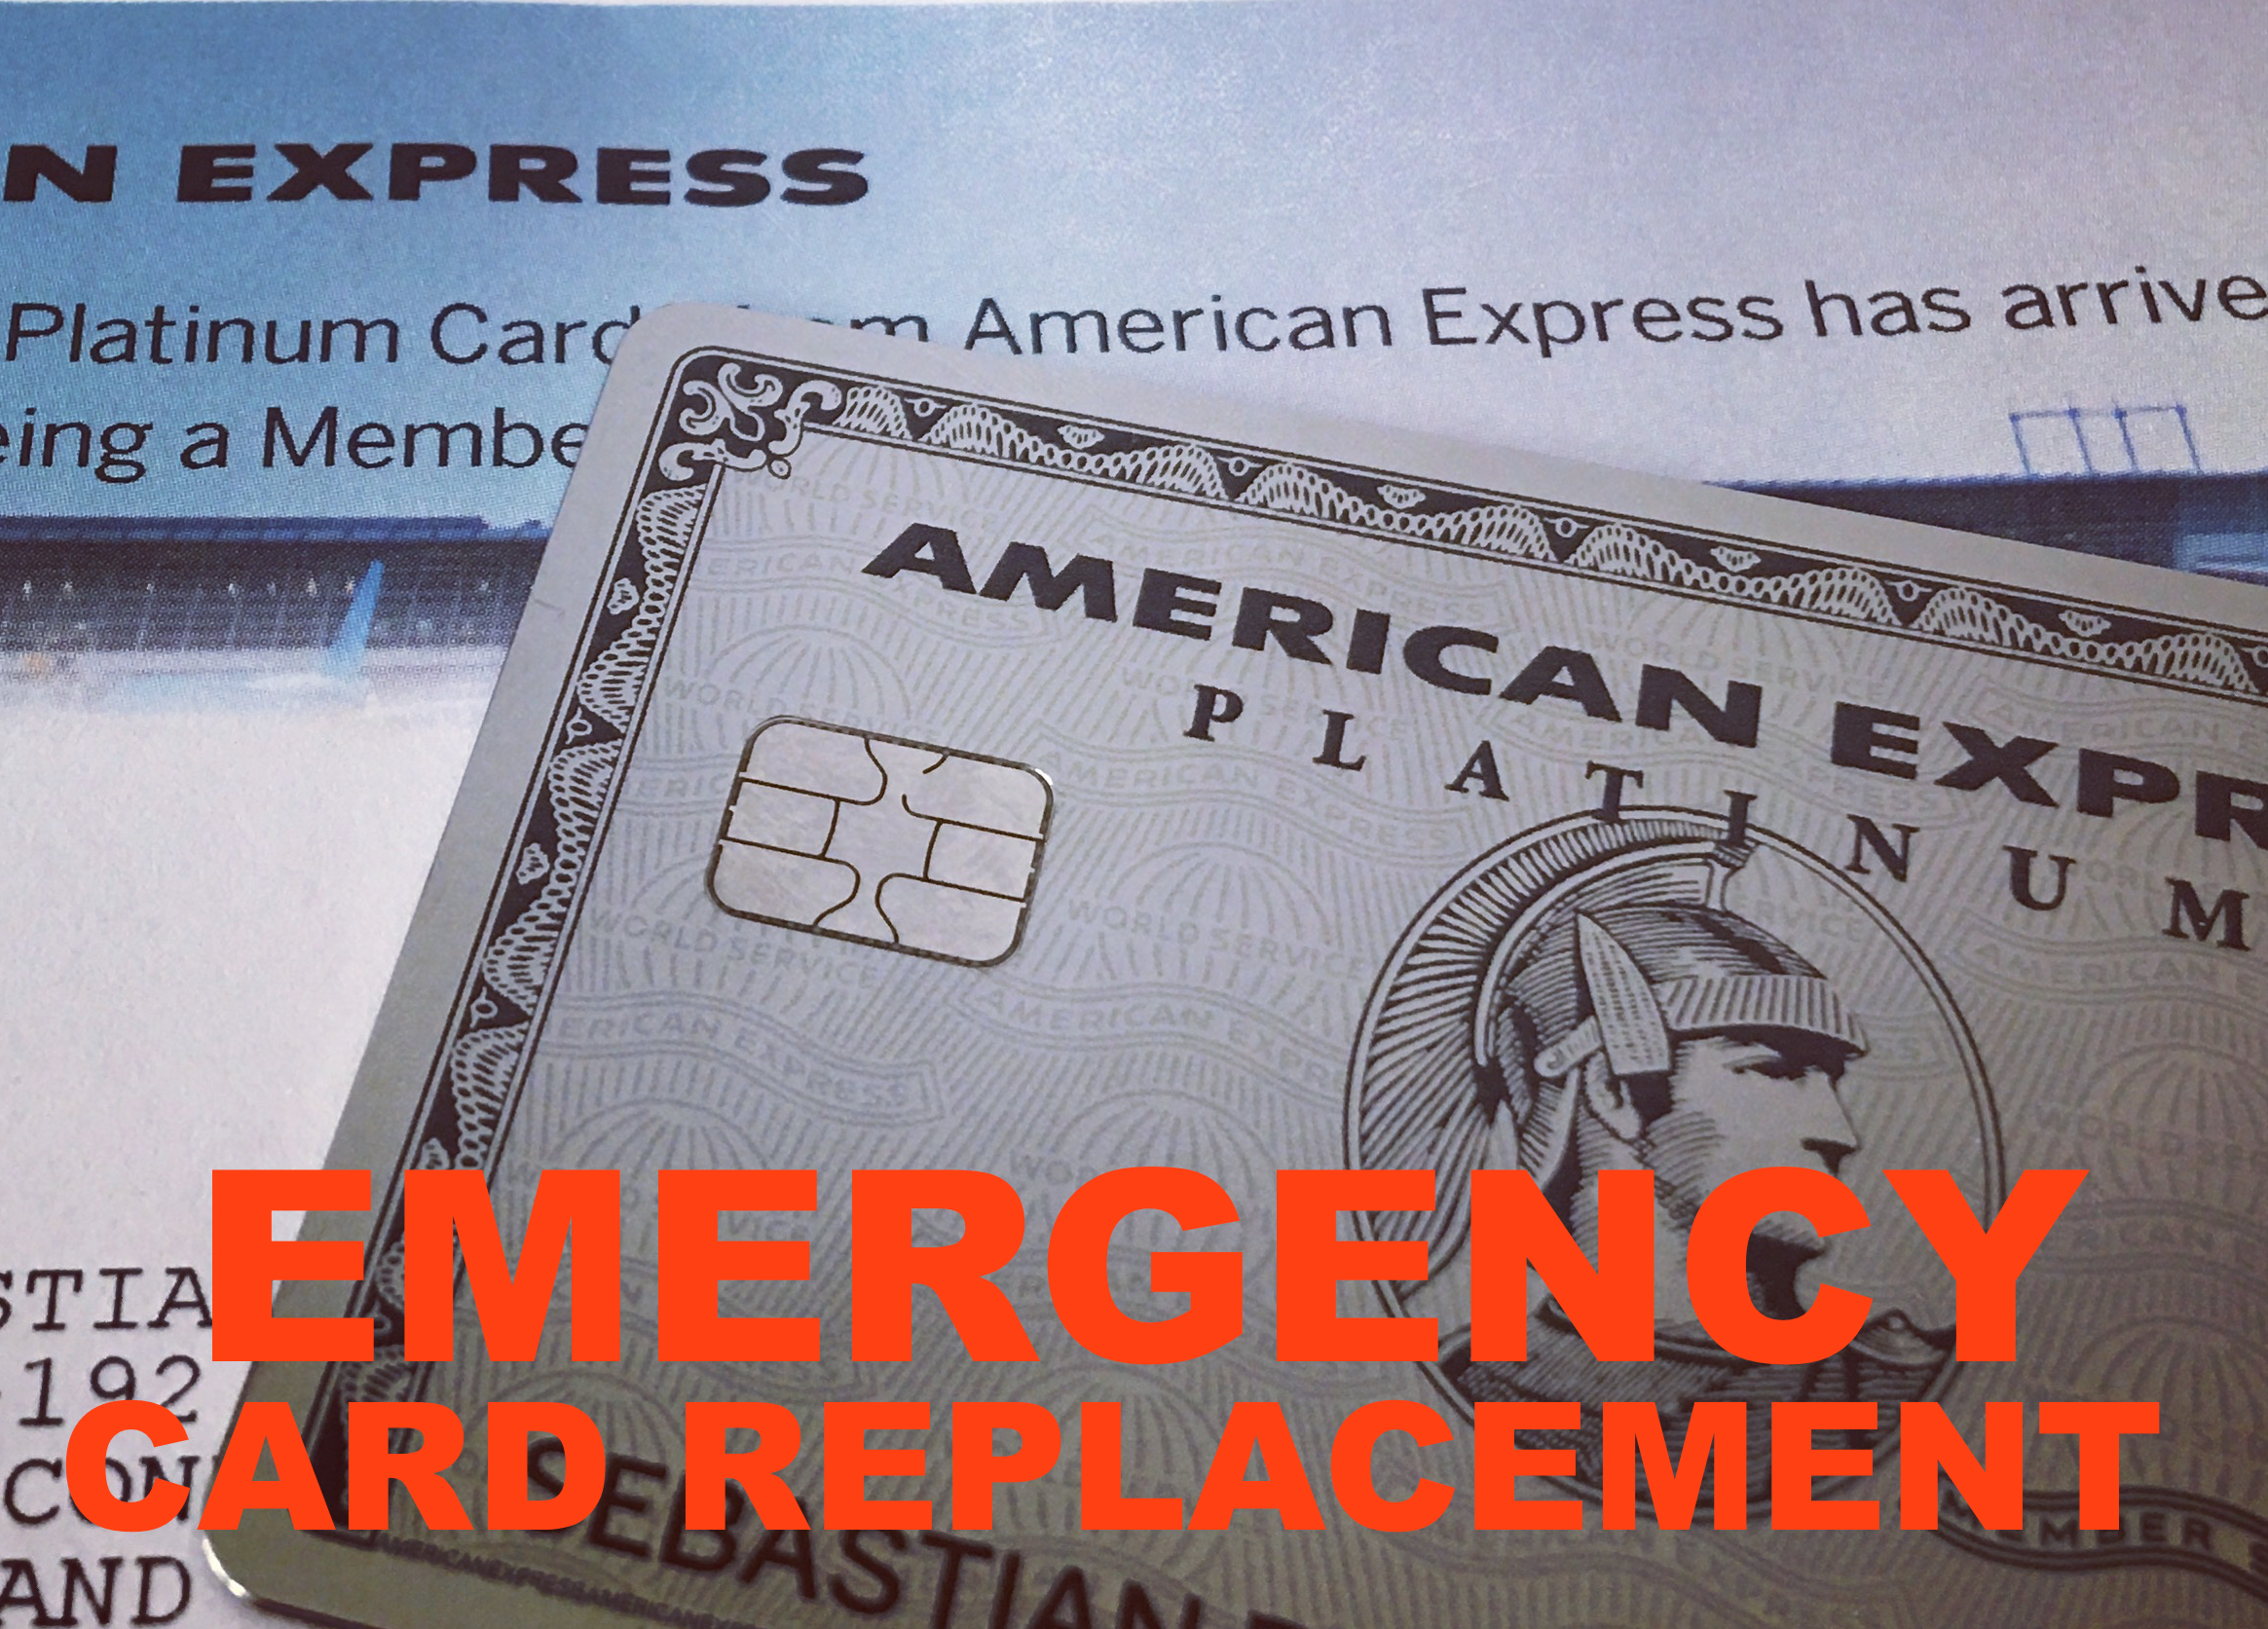 Review: Getting An American Express Card Replaced While